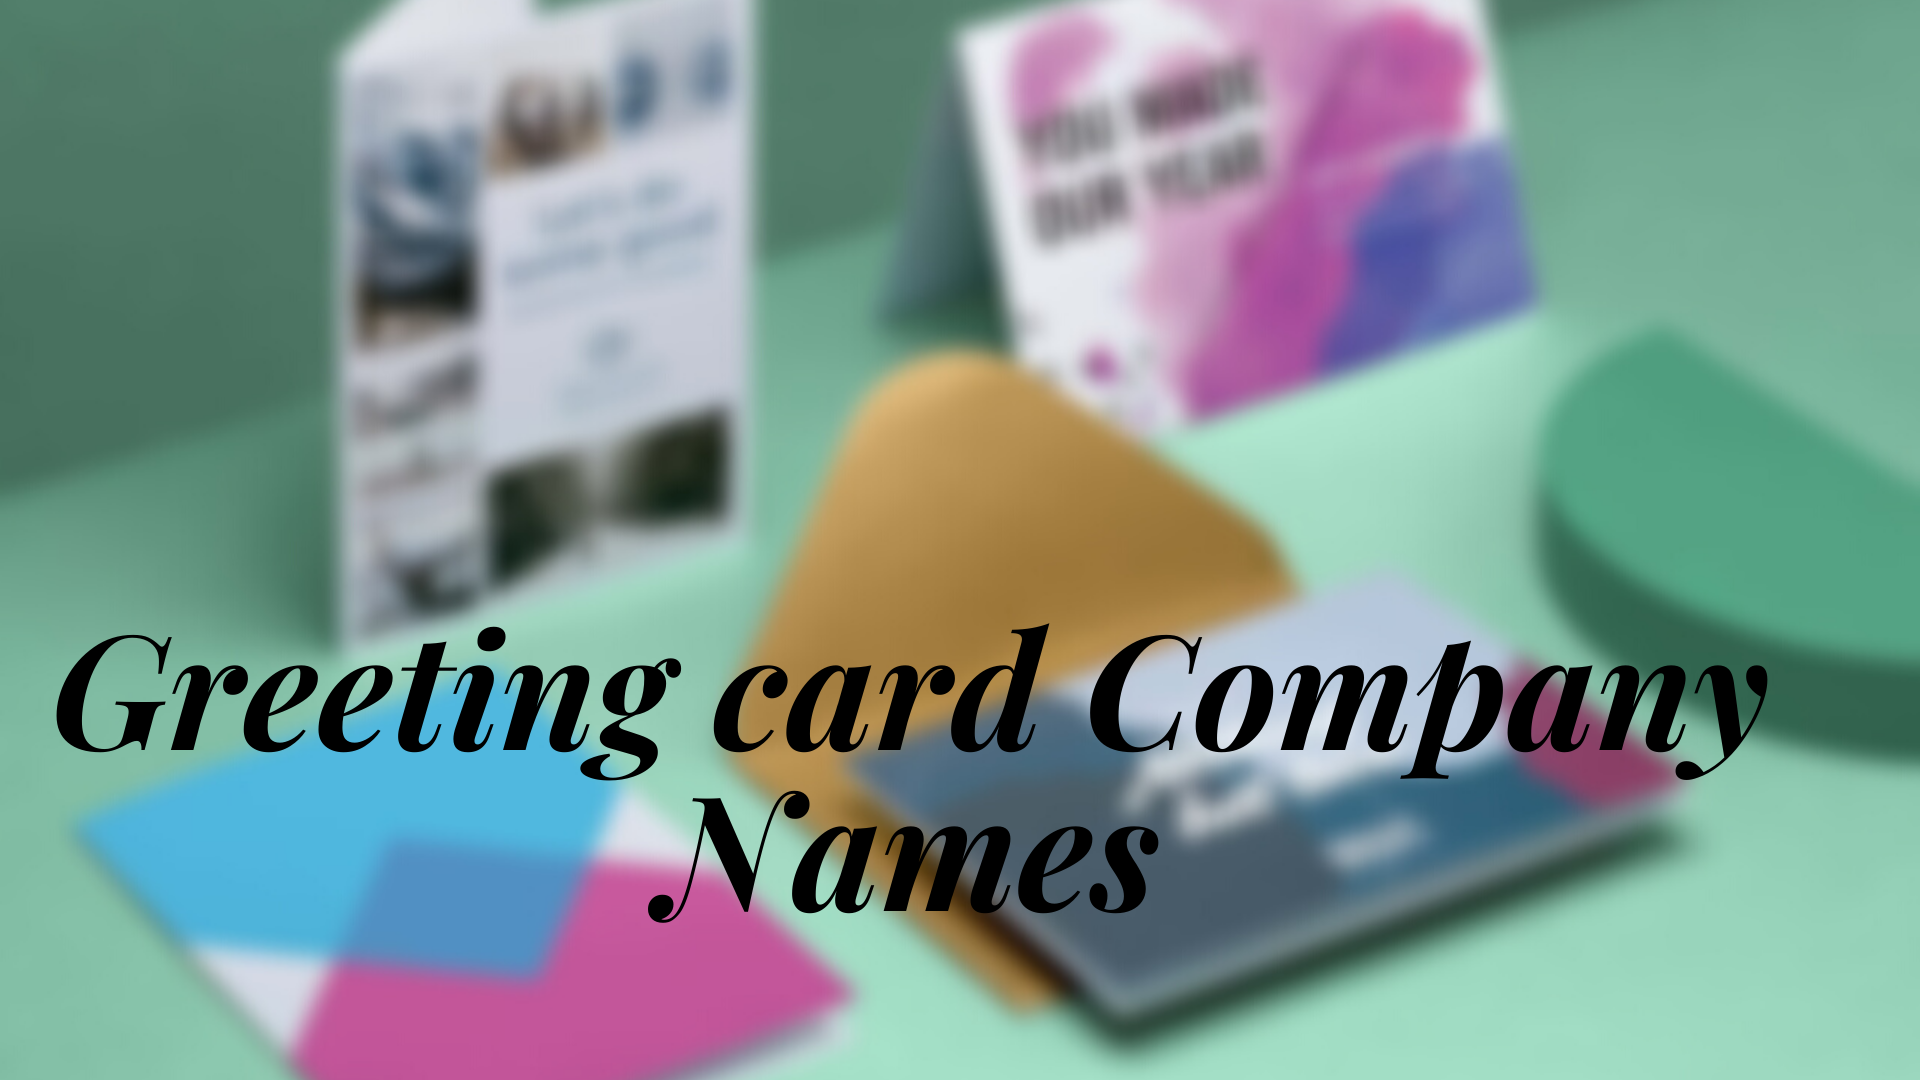 Greeting card Company Names